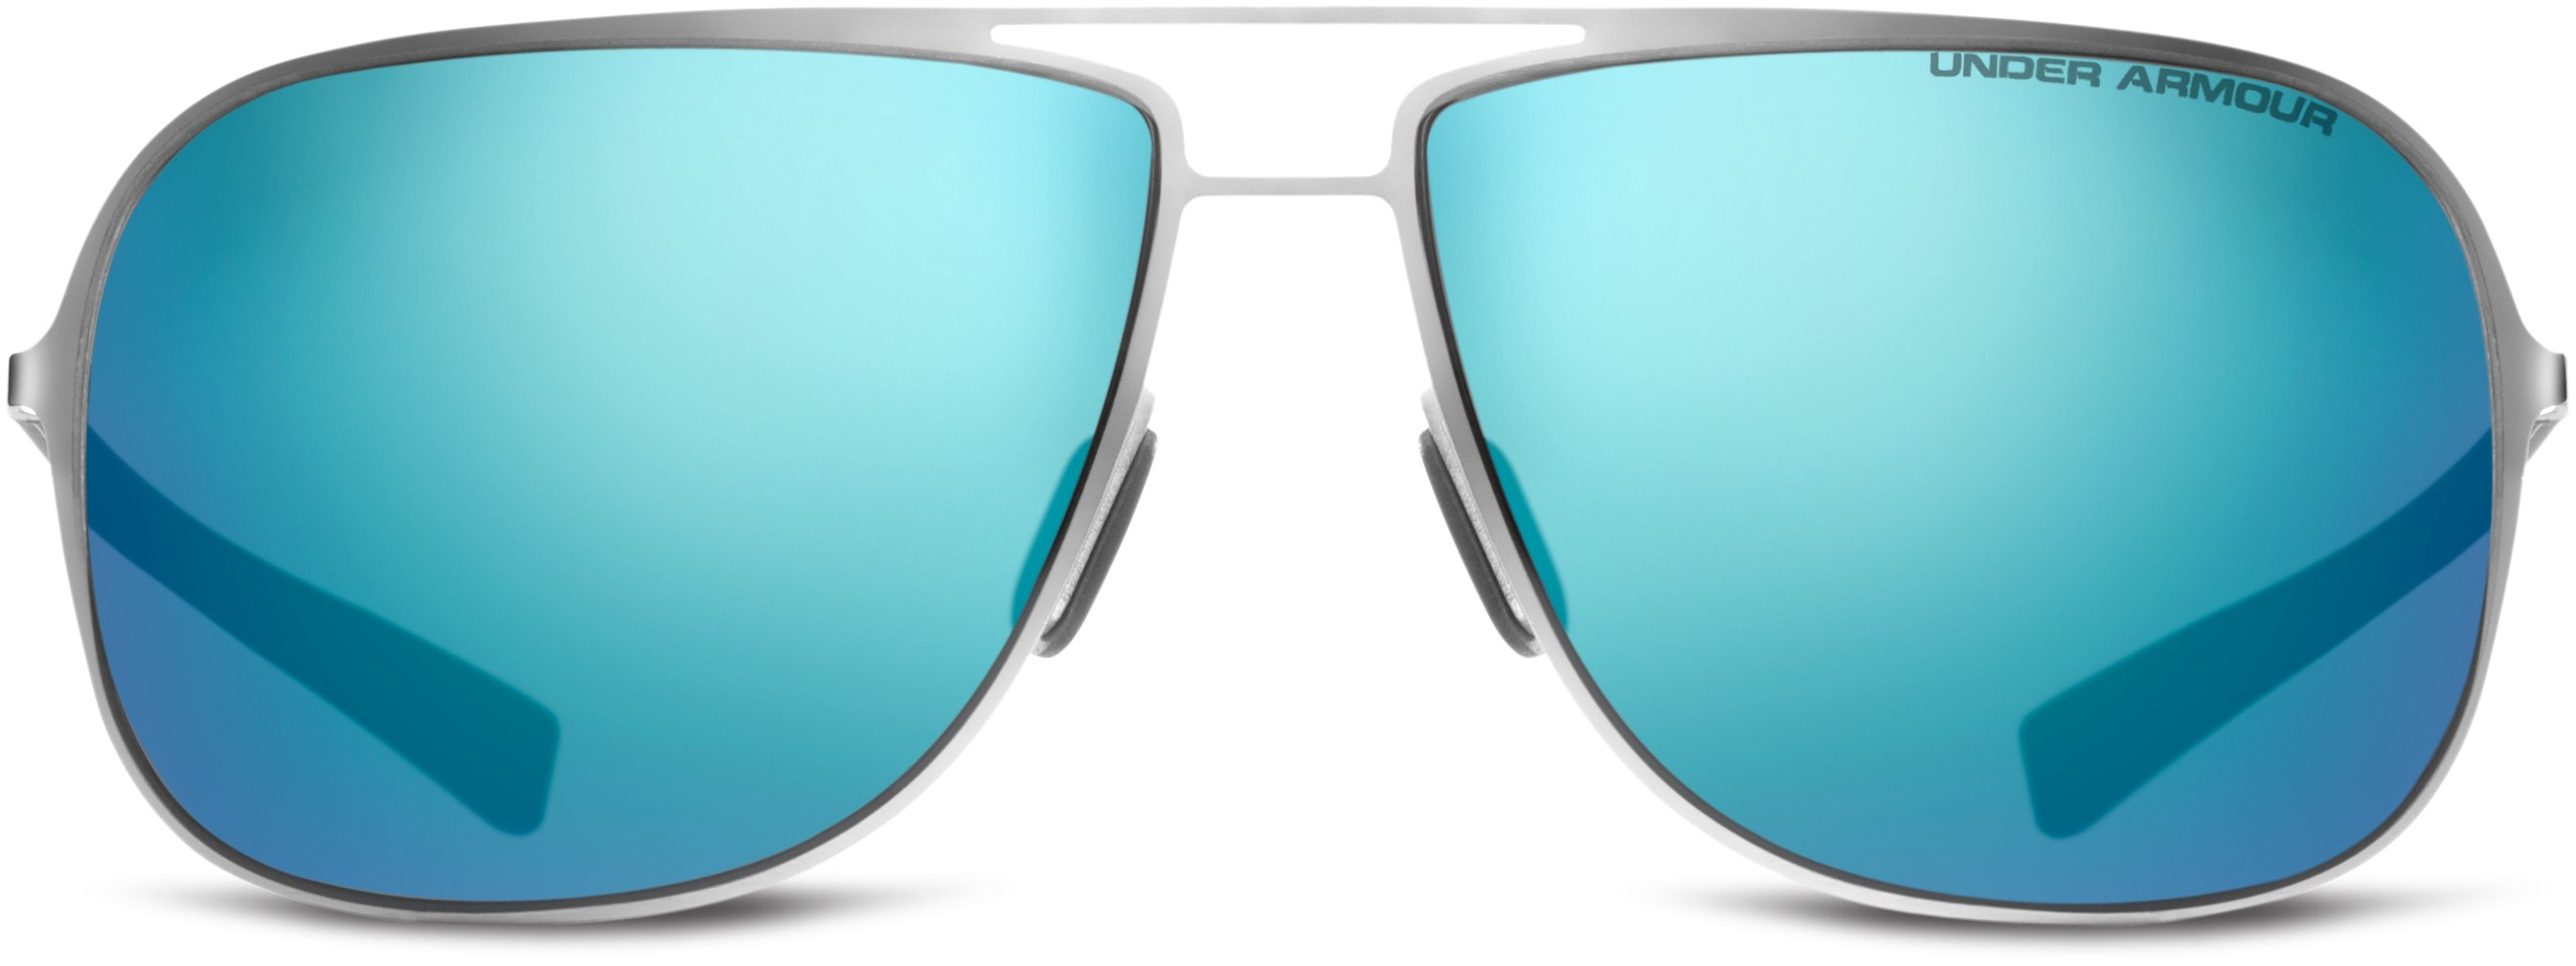 UA Alloy Sunglasses, SHINY SILVER, undefined